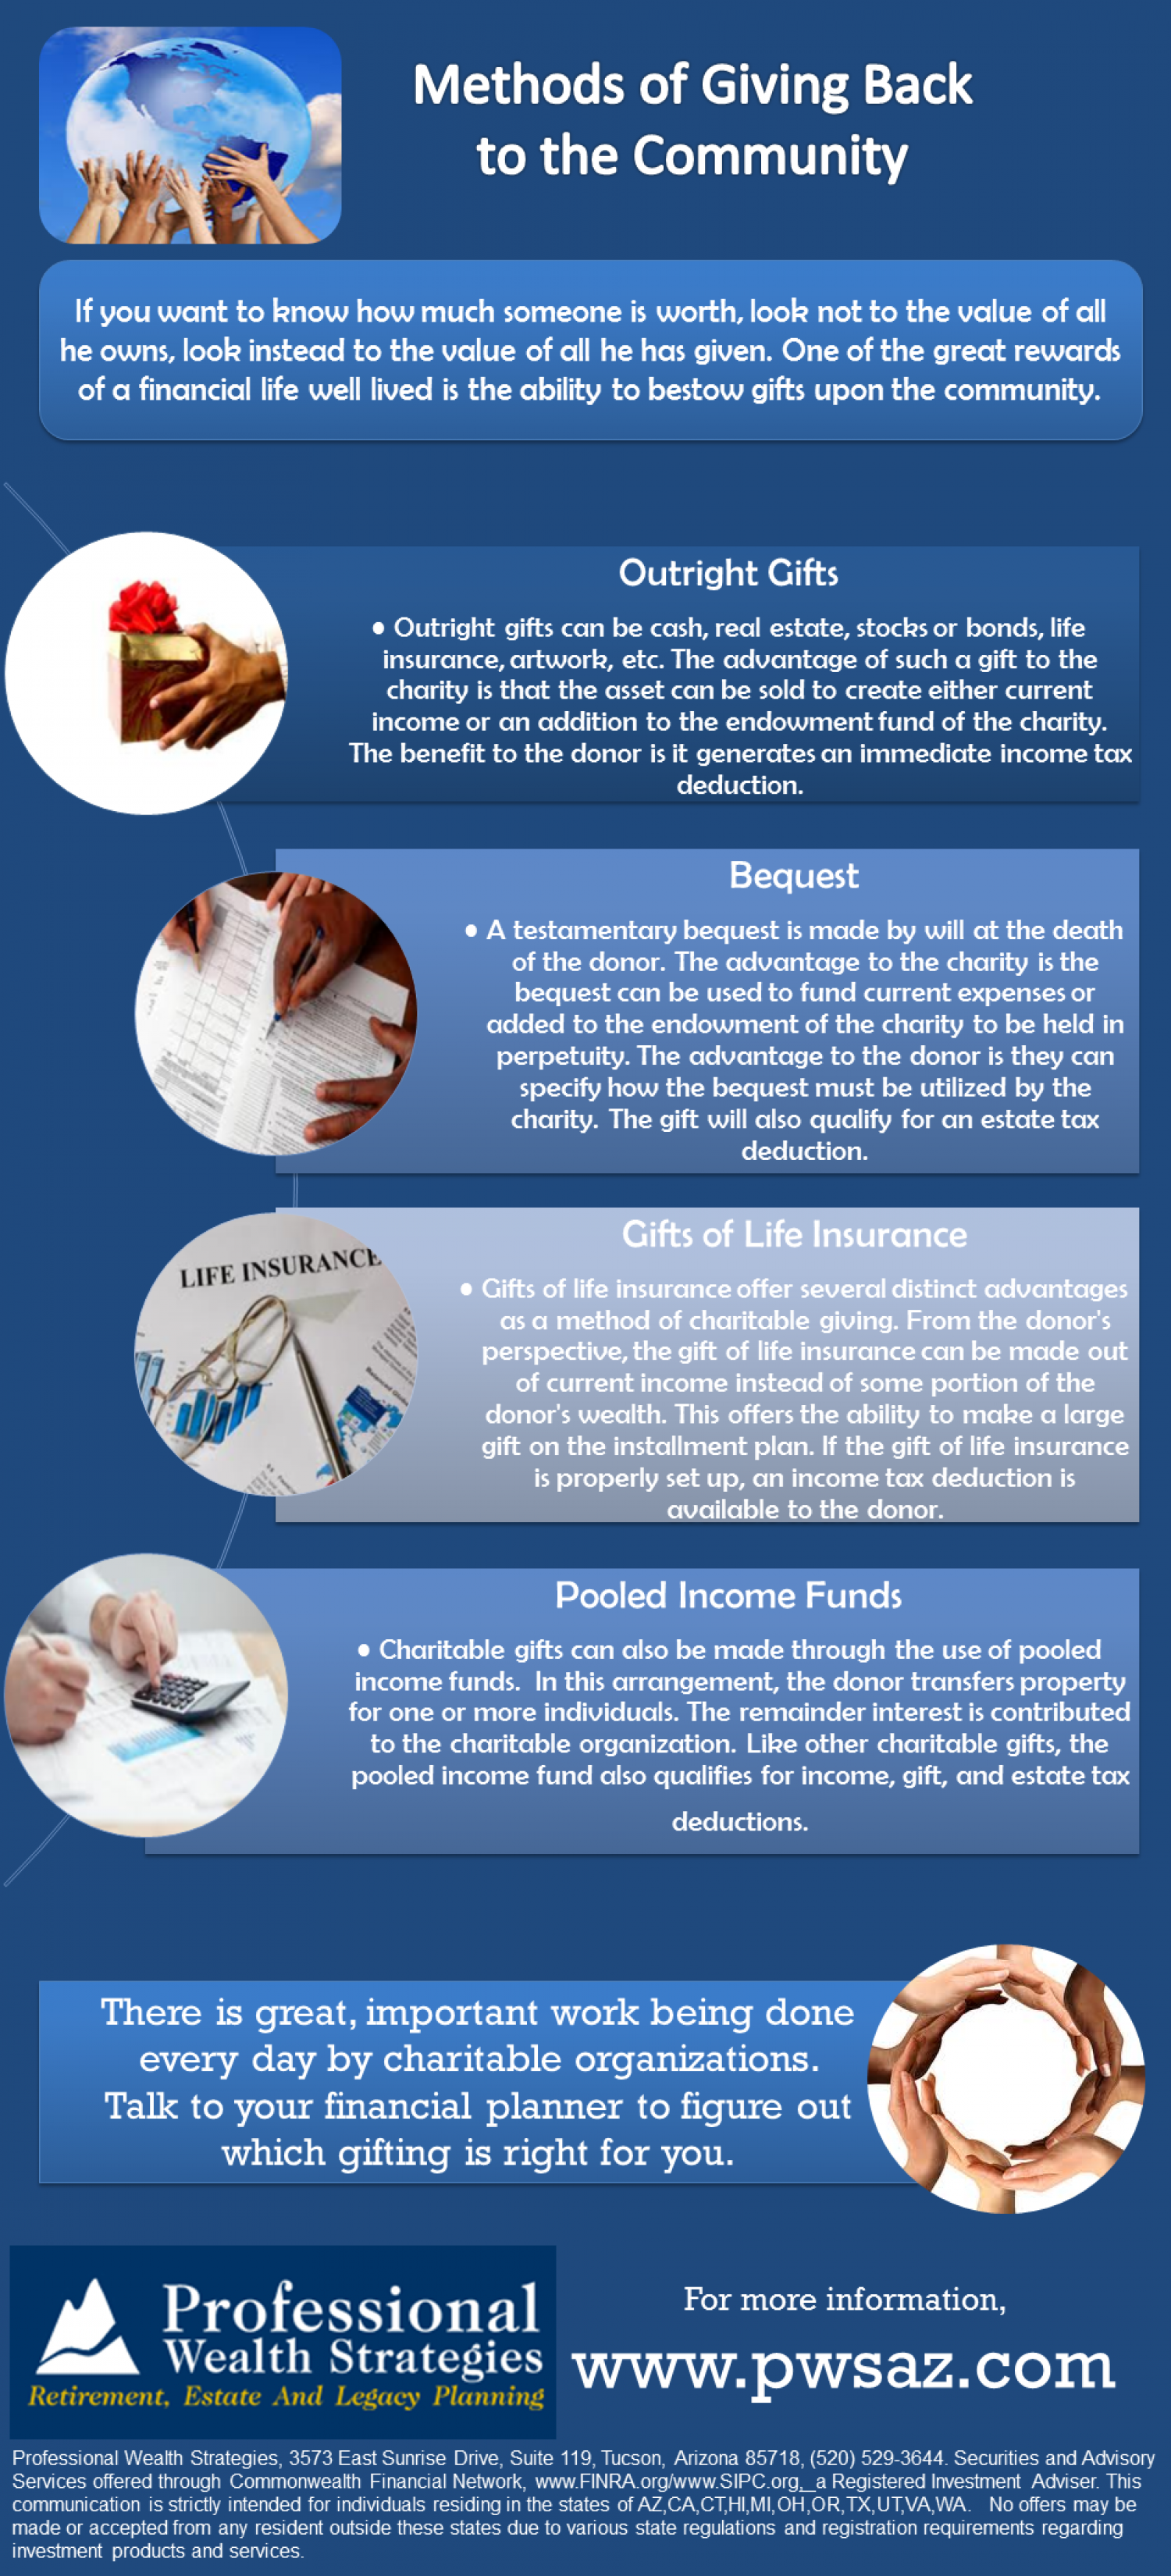 Methods of Giving Back To The Community Infographic